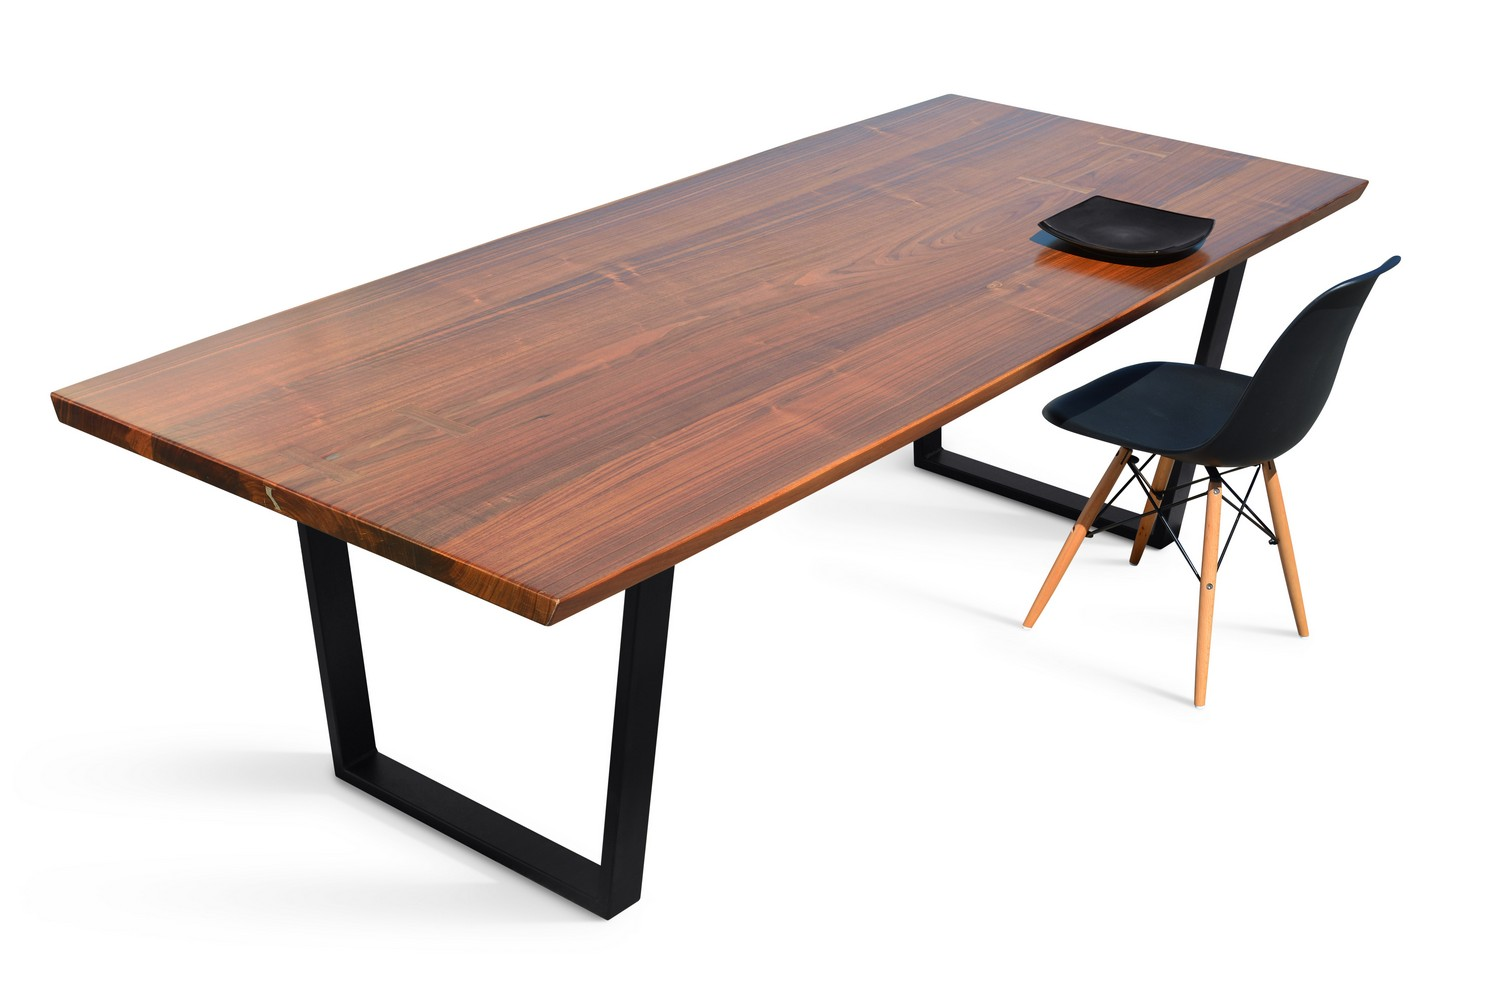 Etz & Steel Viceroy Live Edge Table Black Base Dining Example 1.jpg